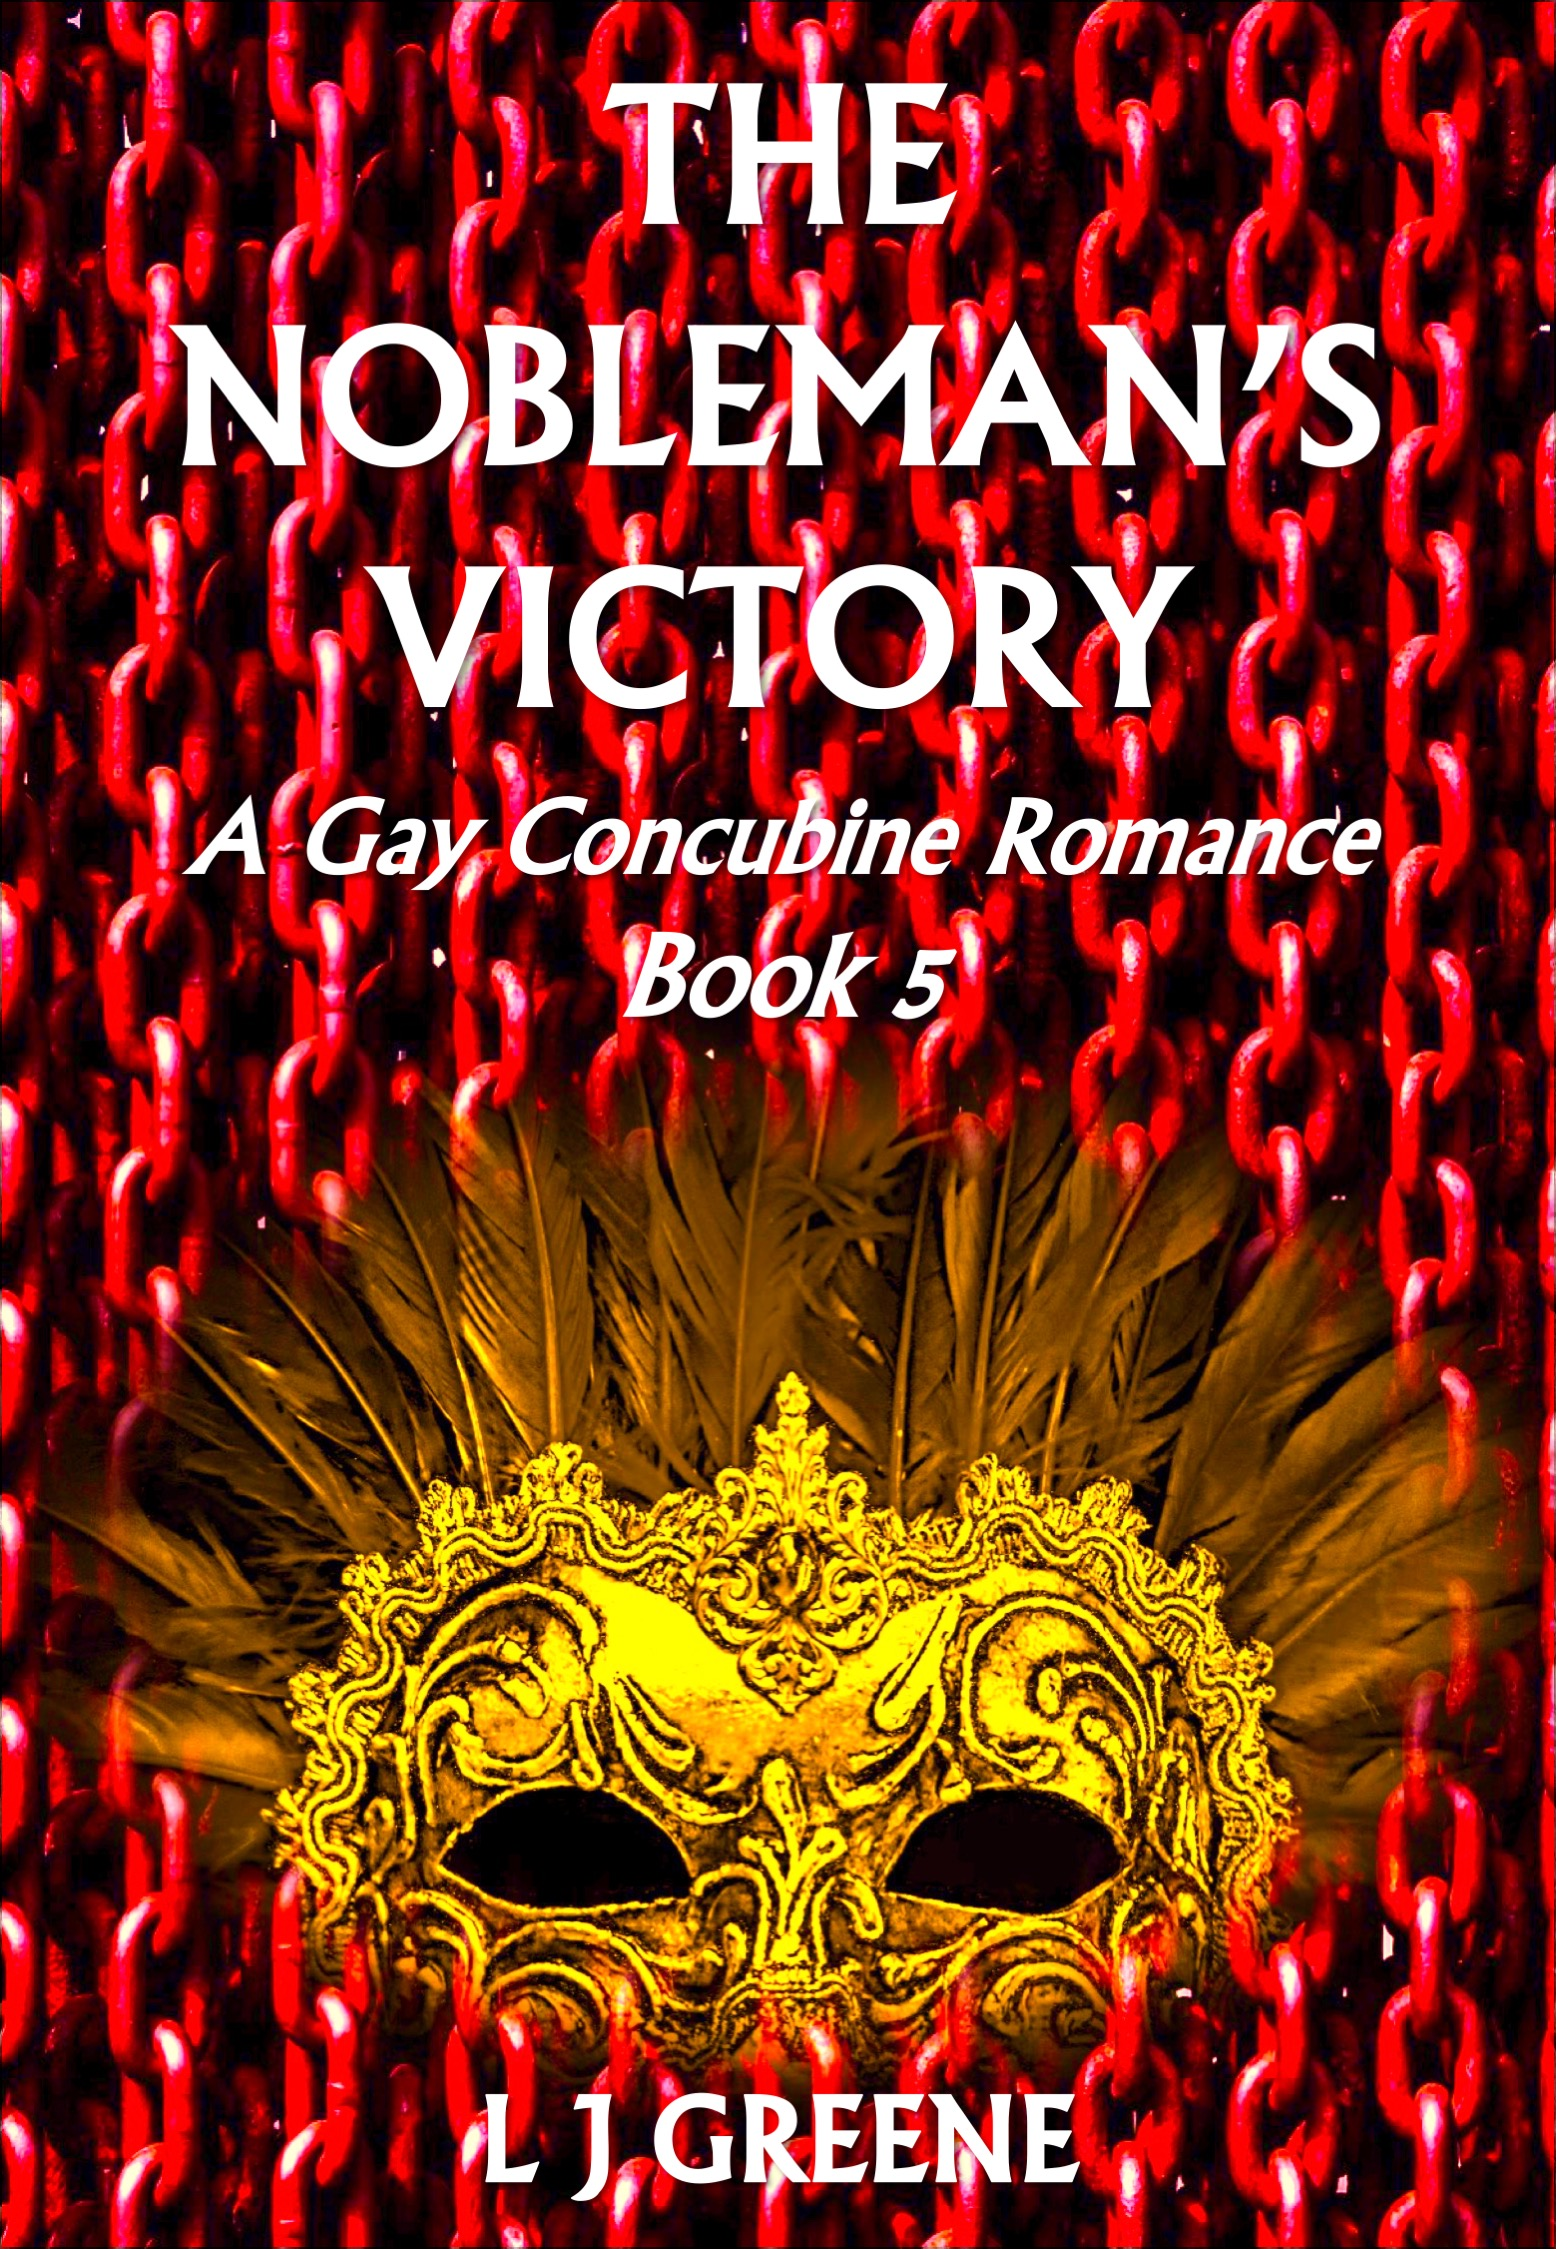 The Nobleman's Victory (Gay Concubines #5)